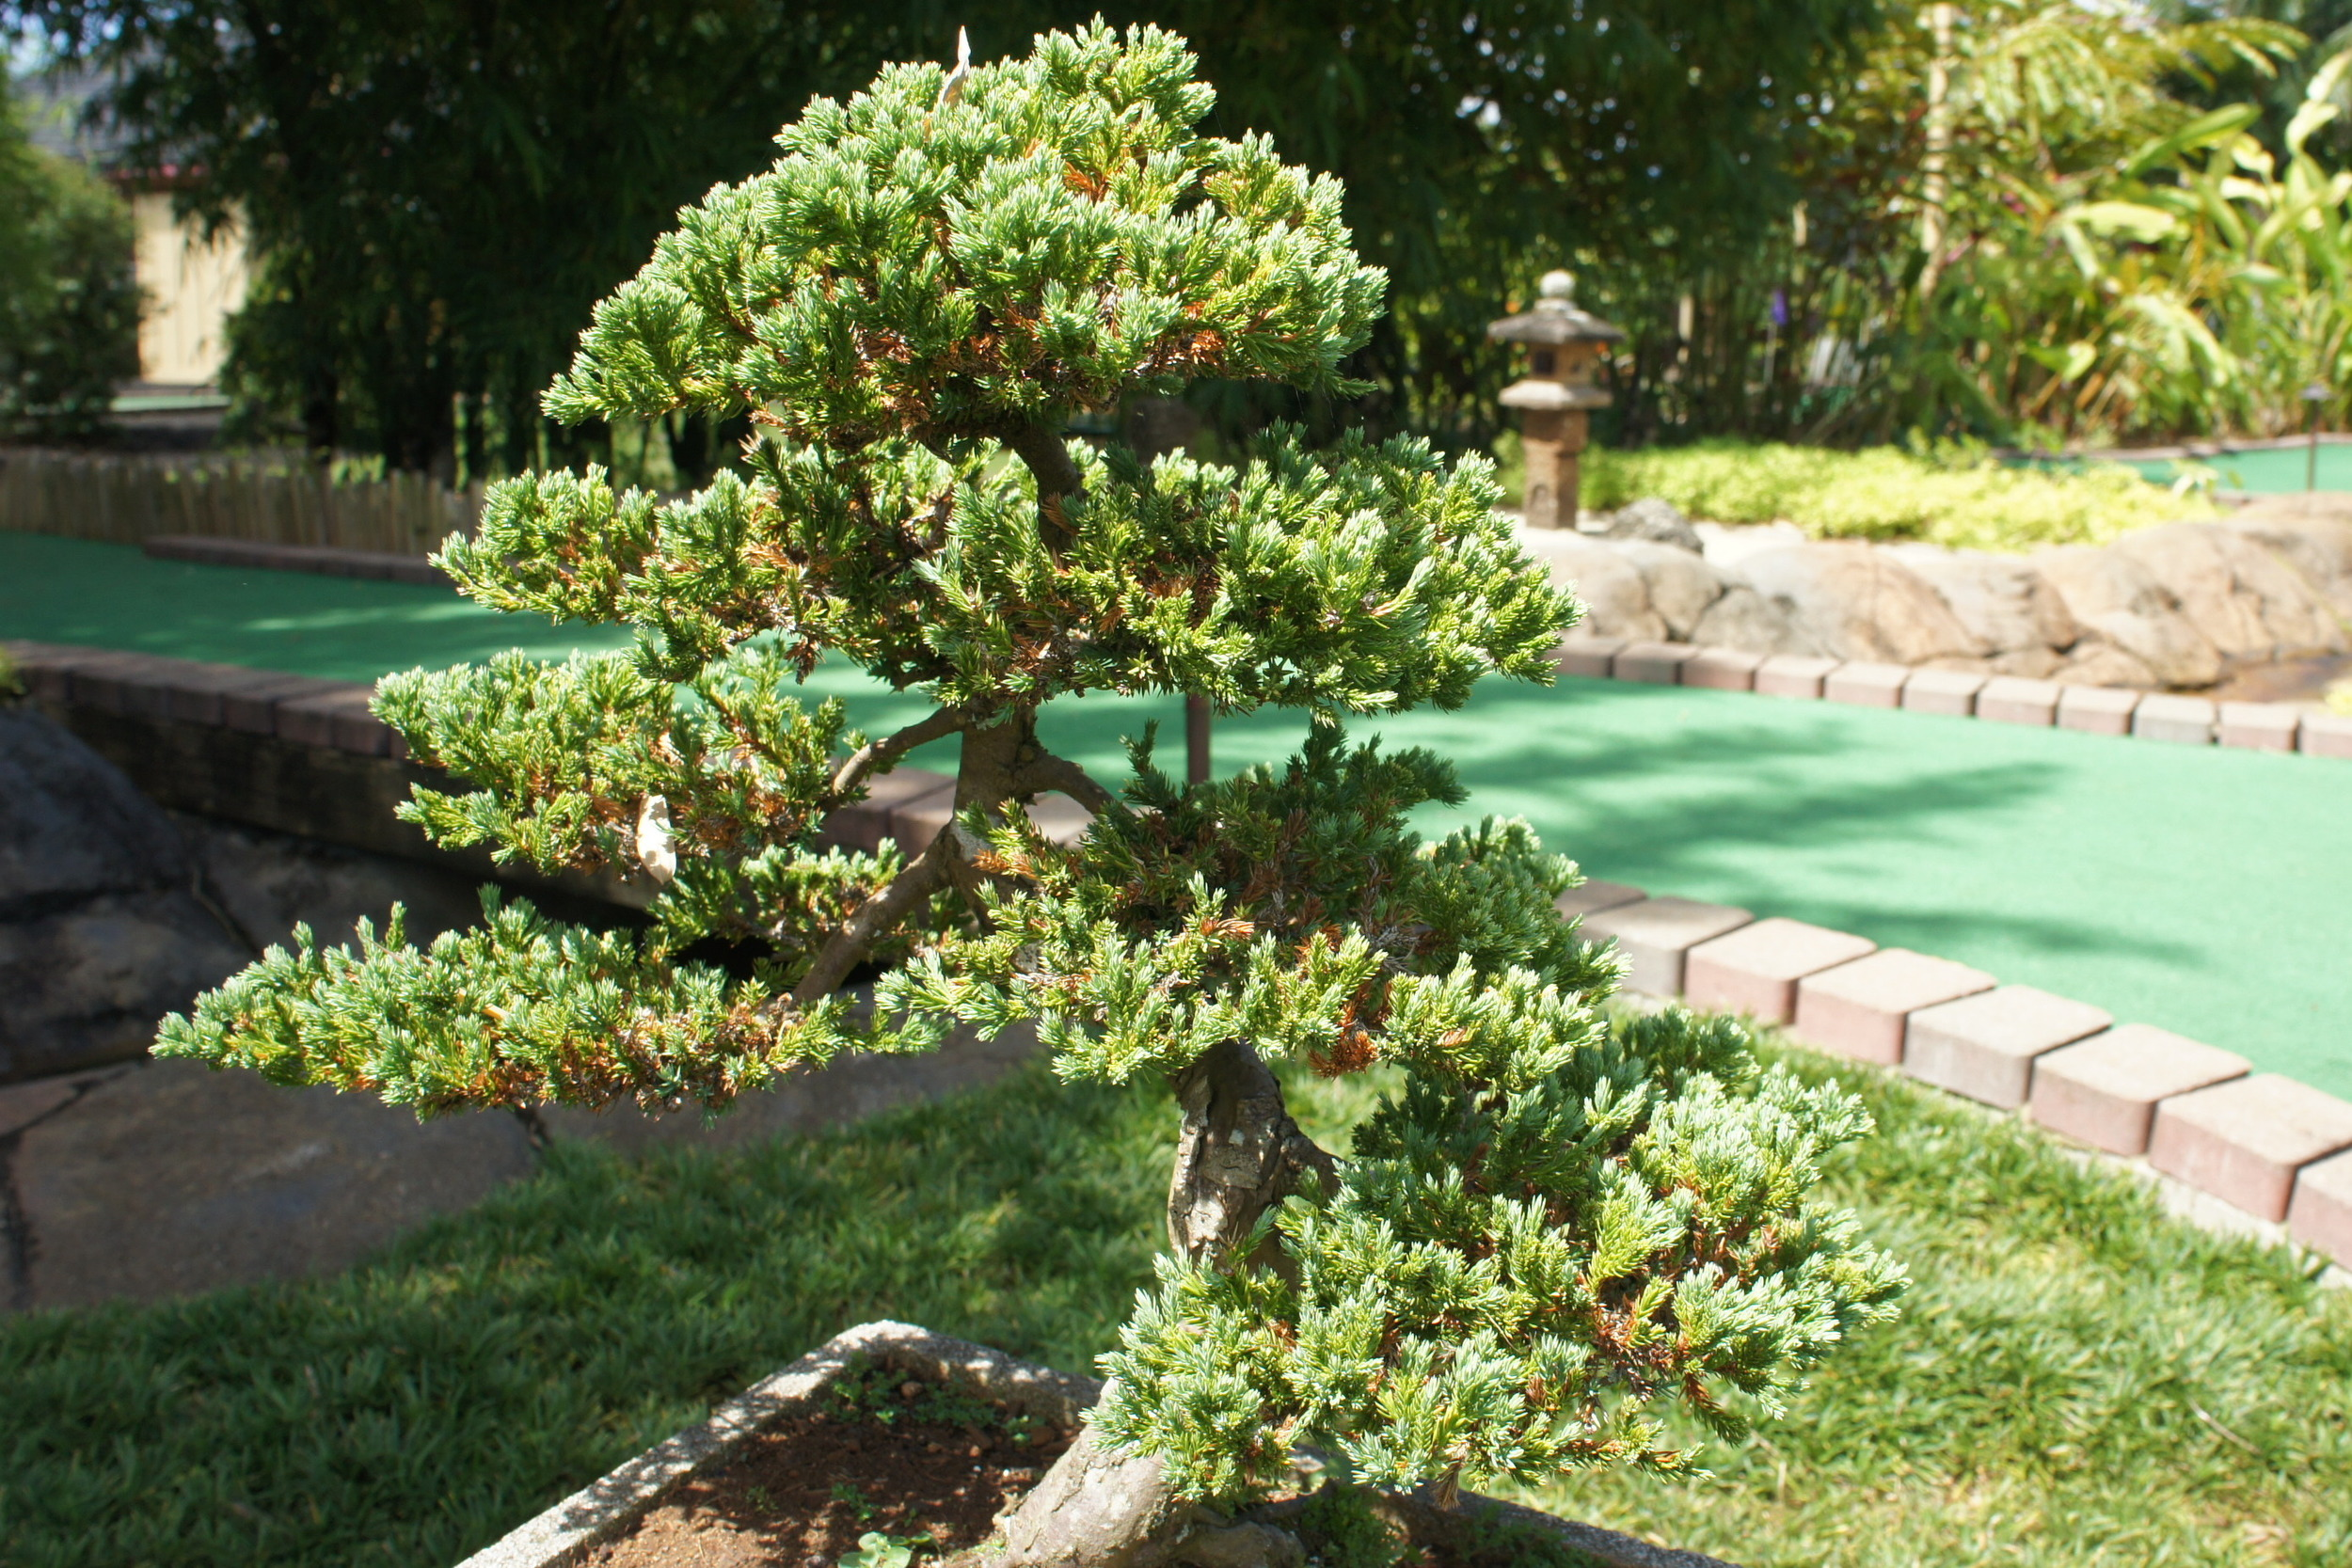 This bonsai tree has little to do with this post but I know this image is not copyrighted.